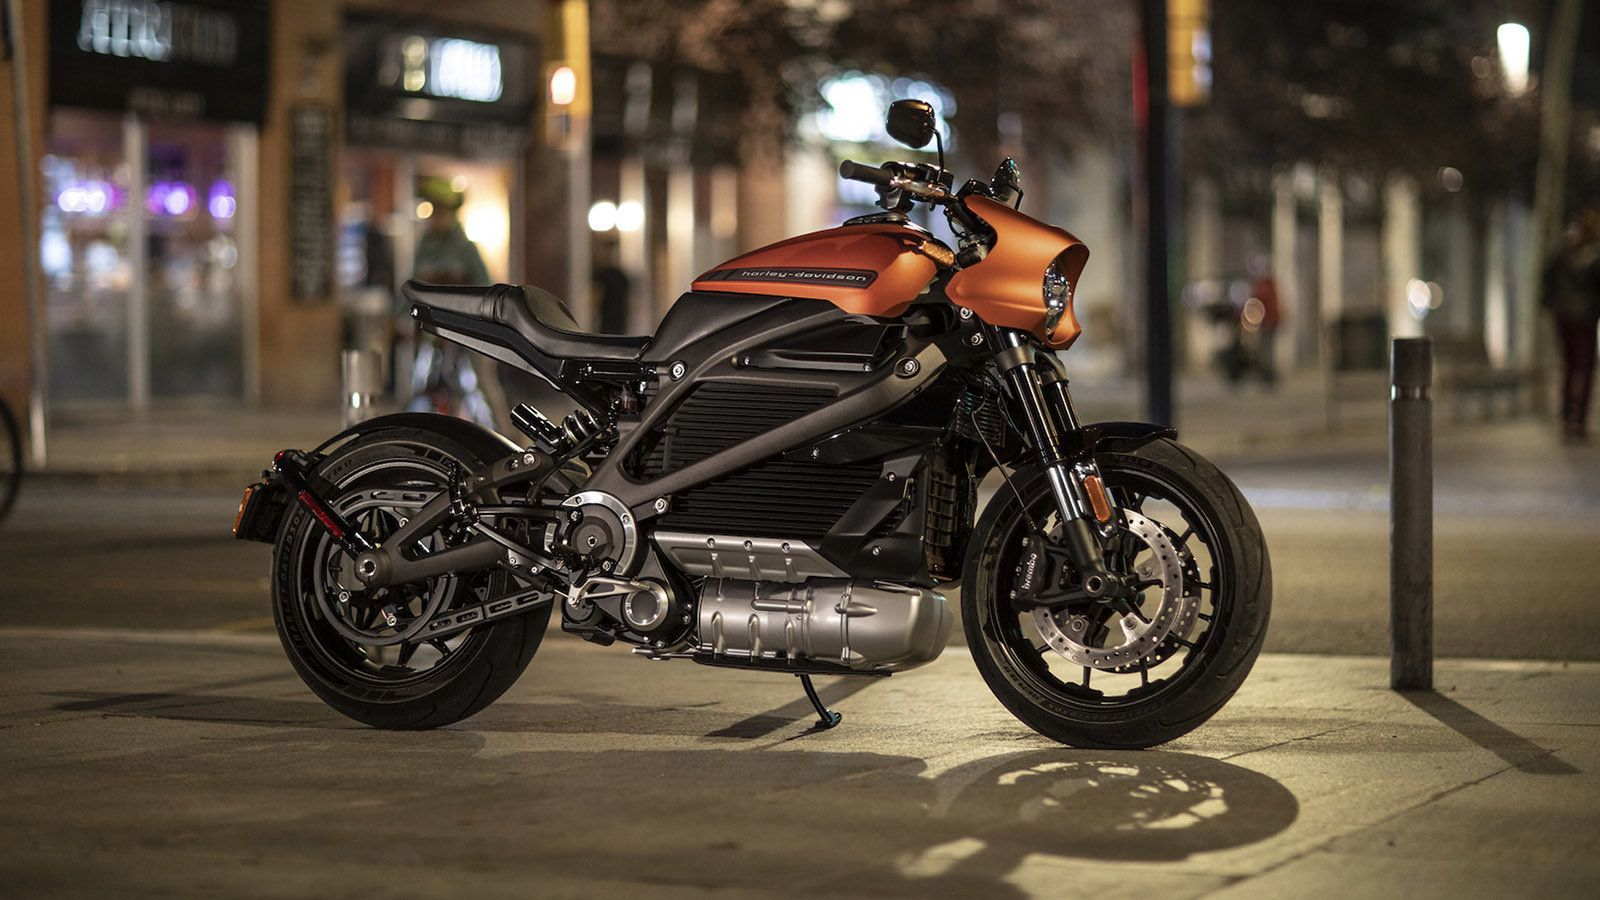 Harley Davidson Shows Off Its Road Ready Livewire Electric Bike Harley Davidson New Motorcycles Motorcycle Price